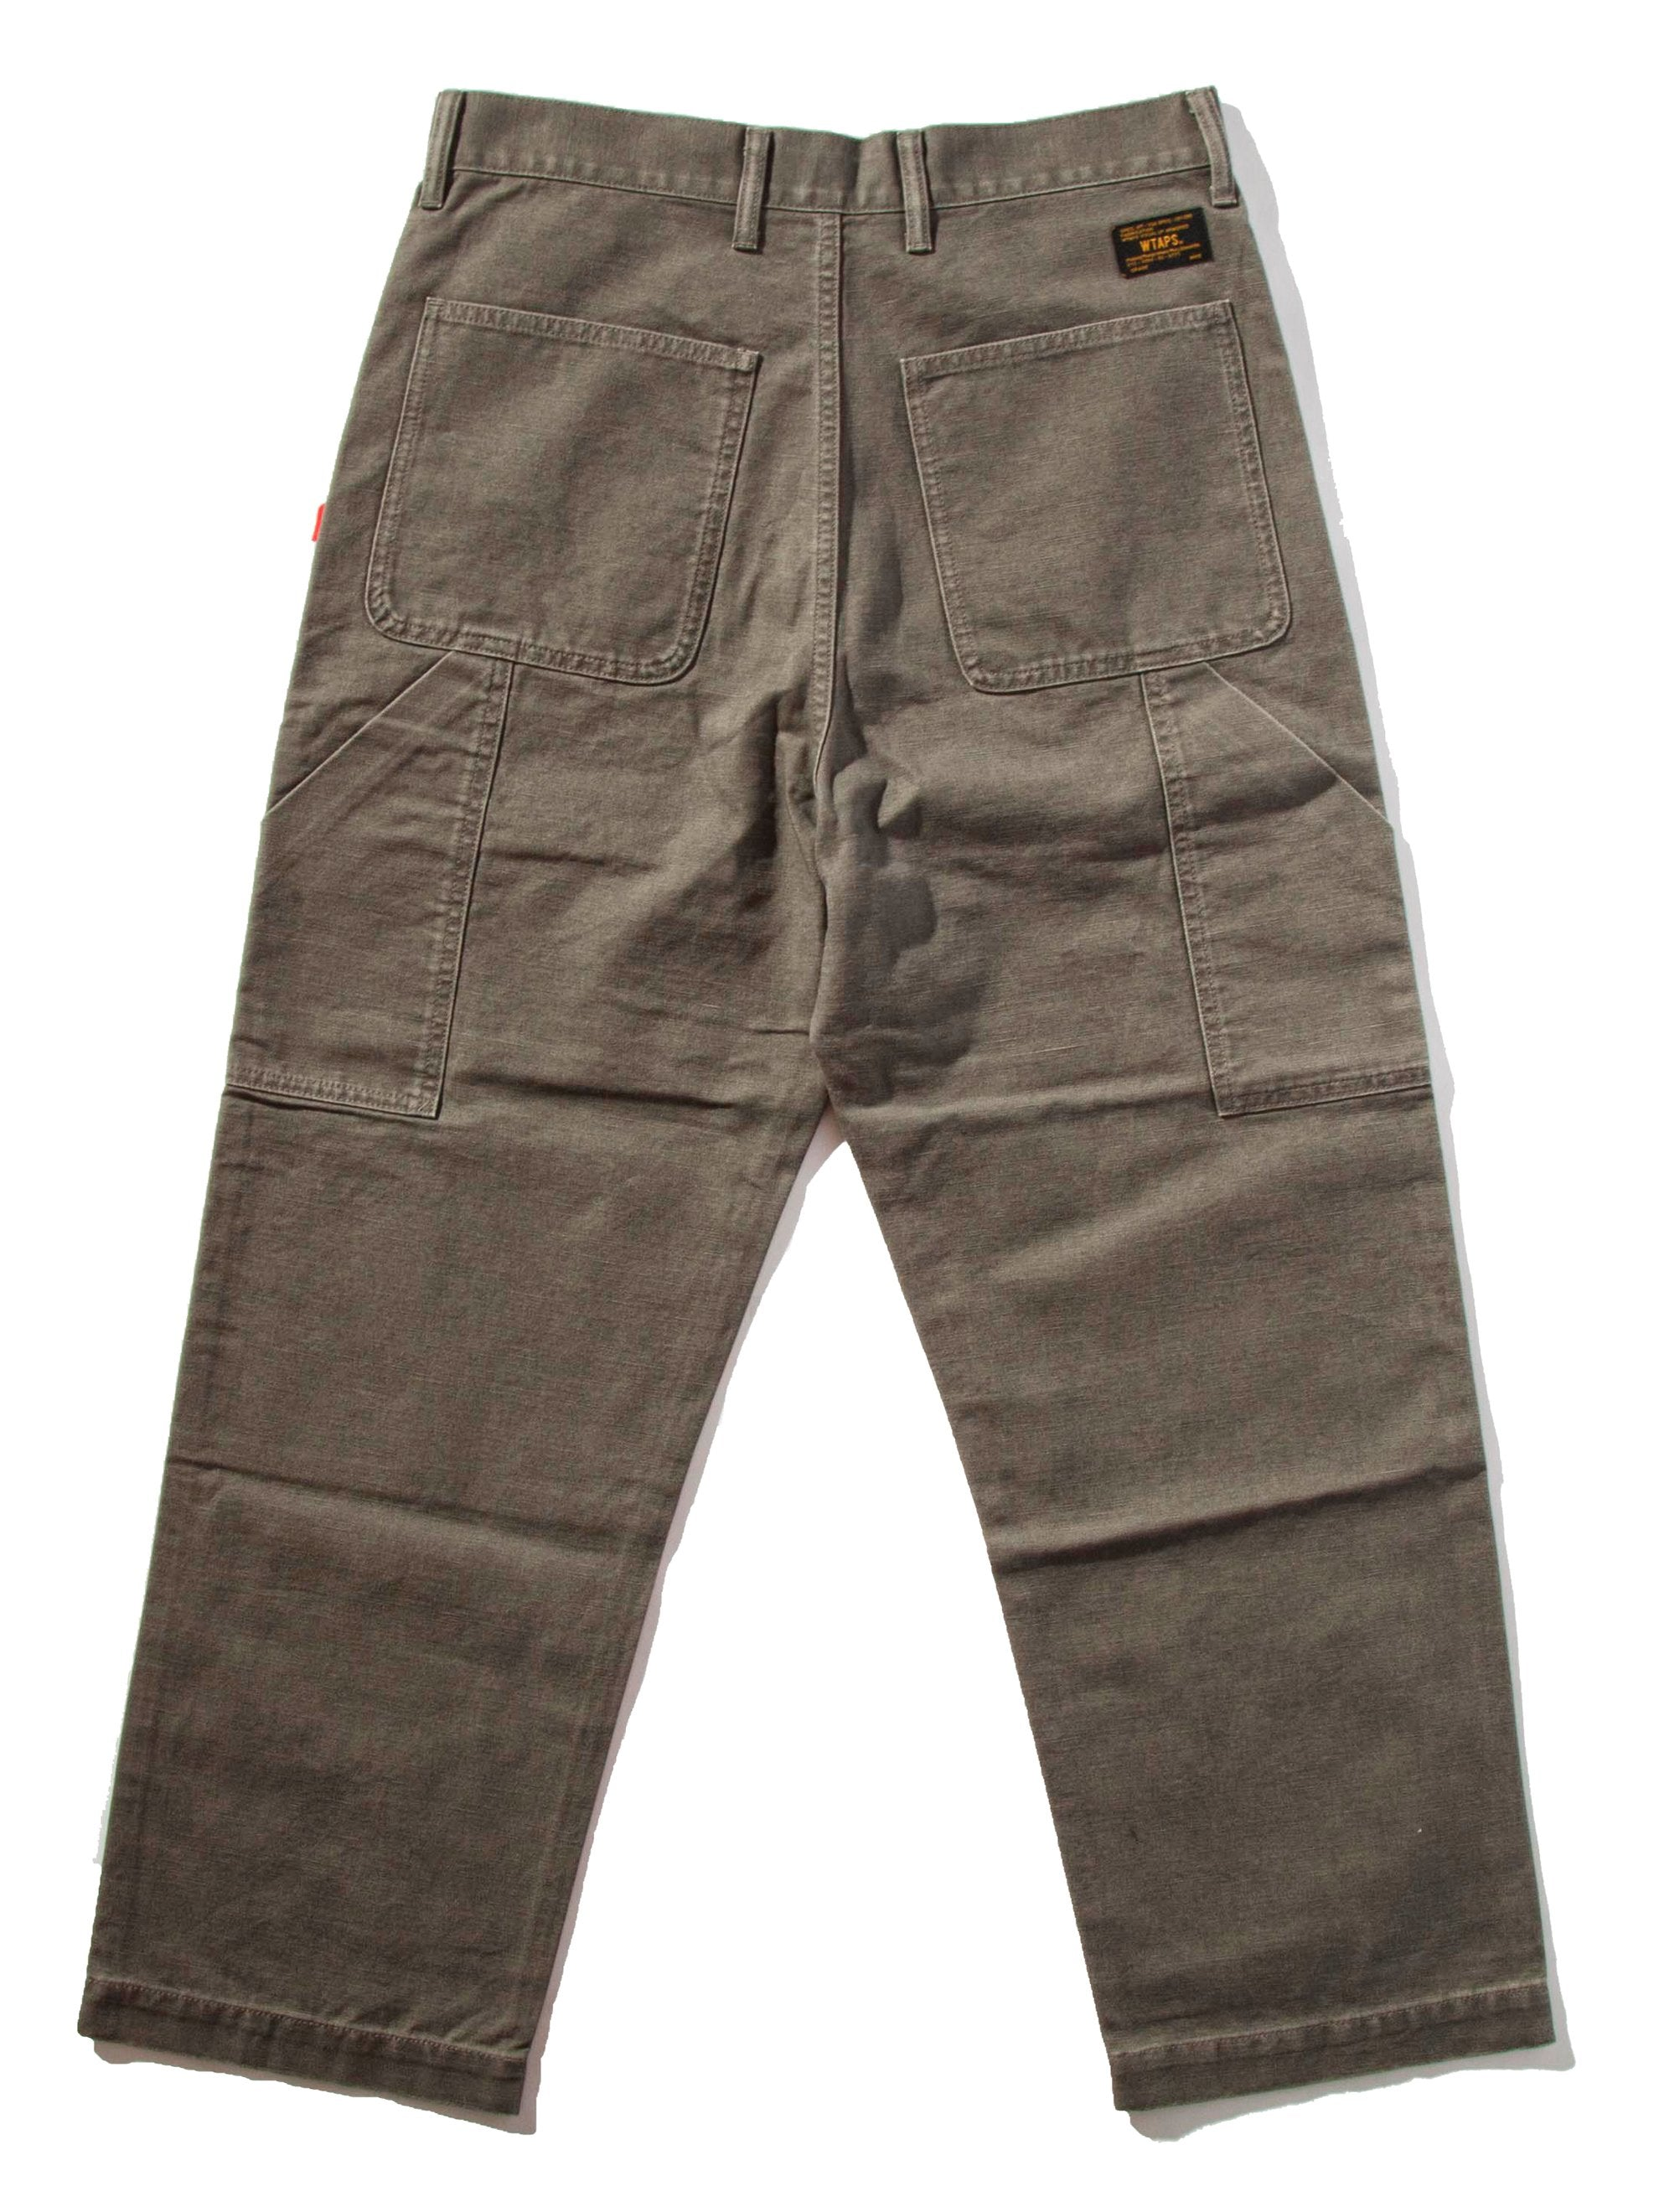 Olive Drab Armstrong Trousers (Duck) 15